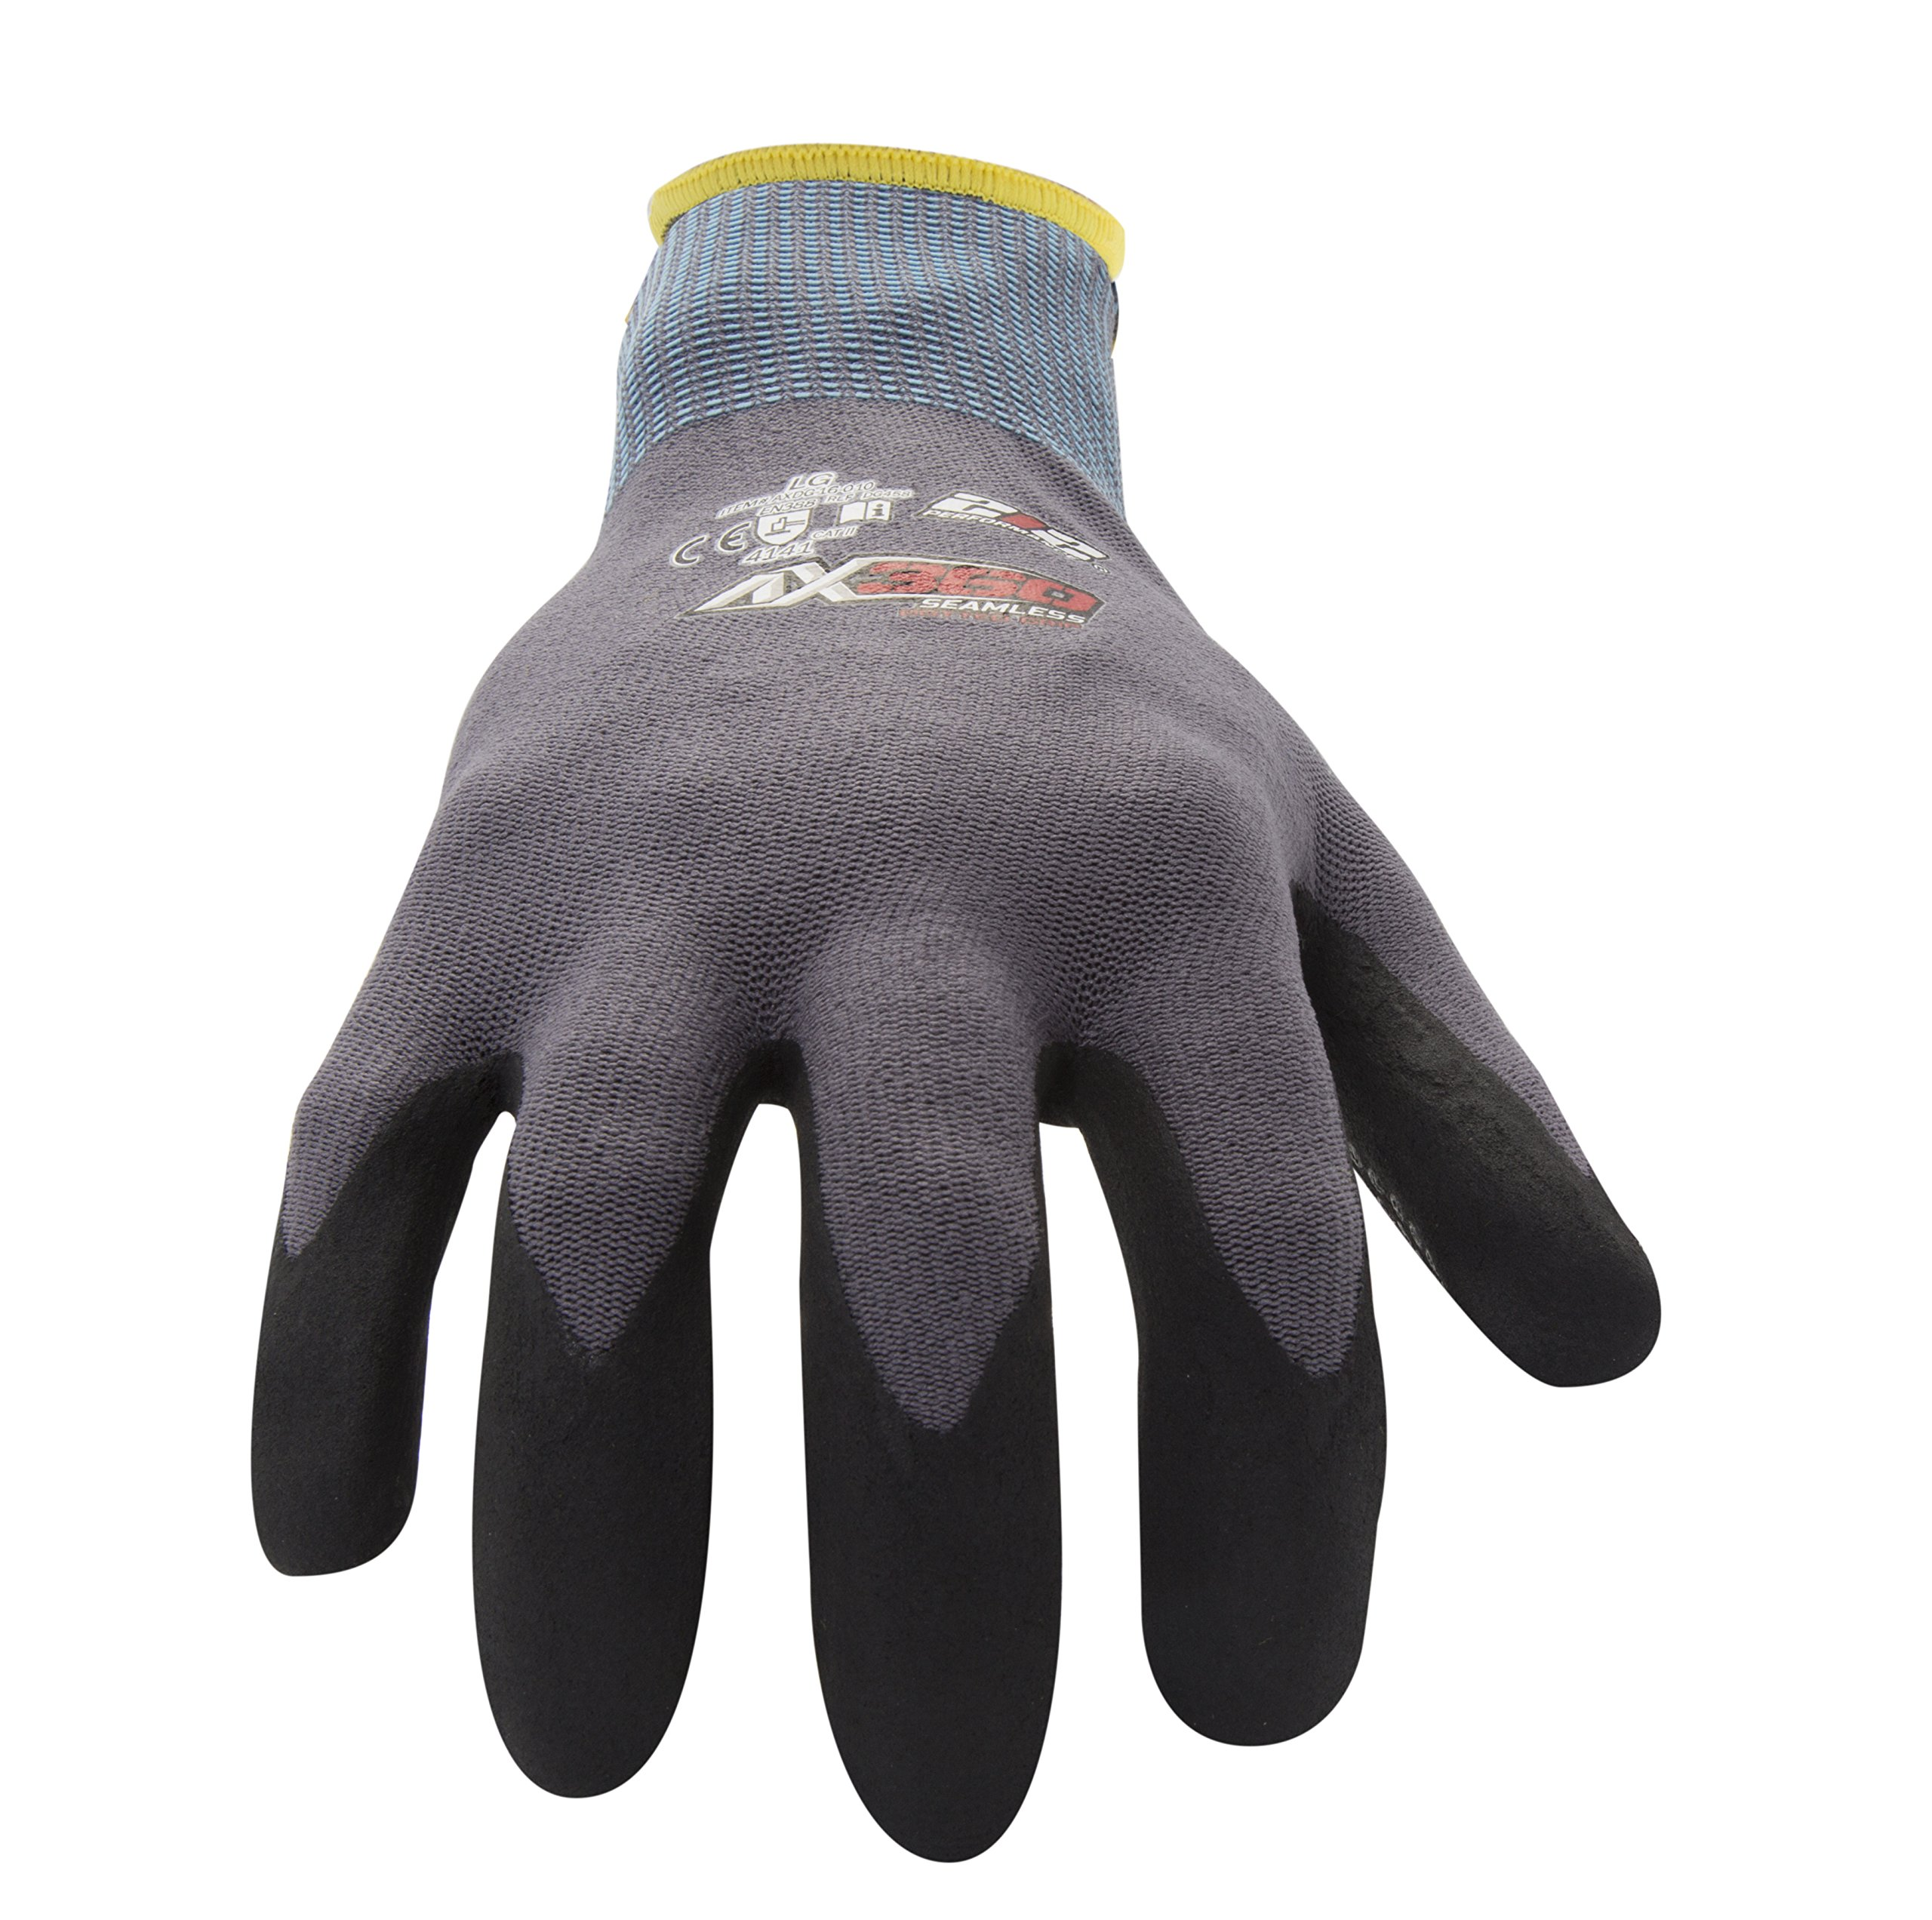 212 Performance Gloves AXDG-16-010 AX360 Dotted Grip Nitrile-dipped Work Glove, 12-Pair Bulk Pack, Large by 212 Performance Gloves (Image #2)